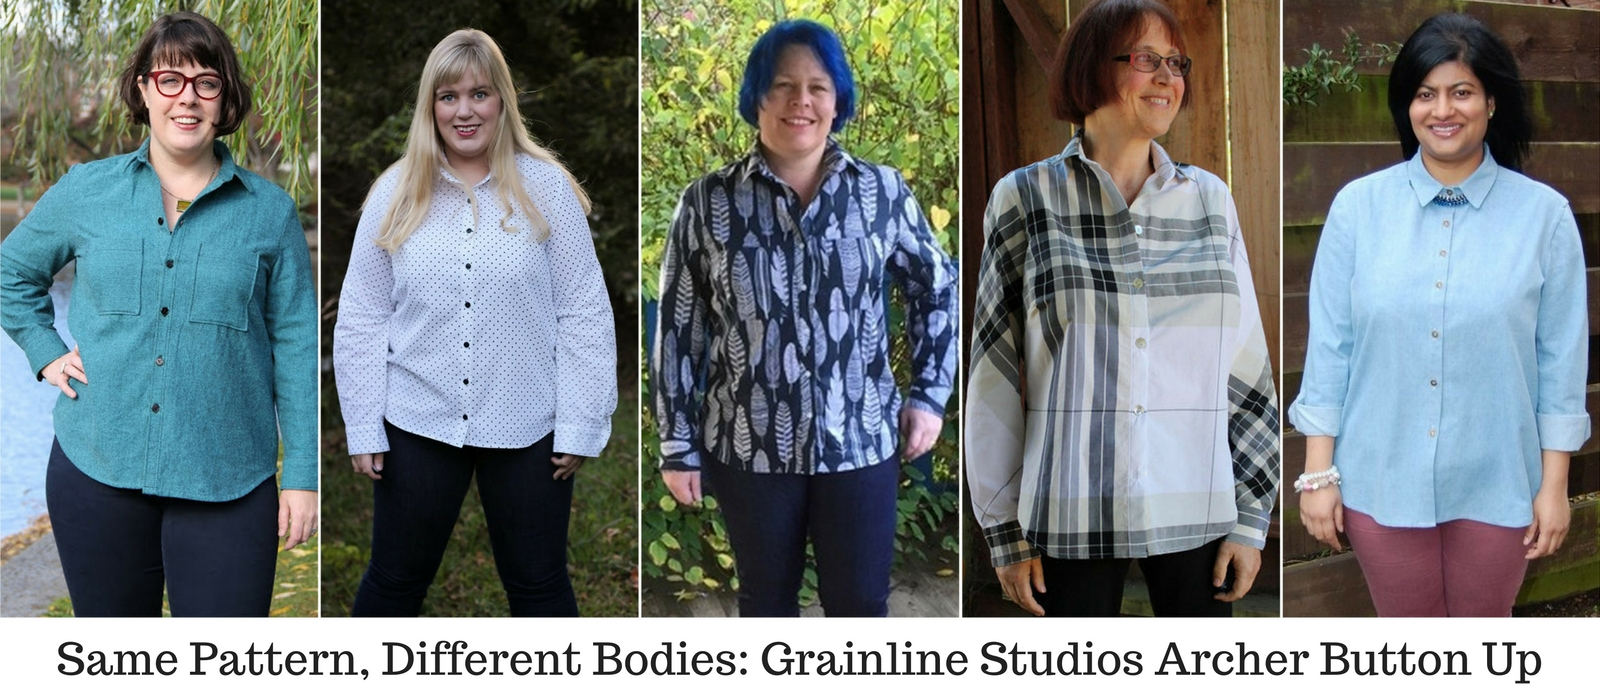 same-pattern-different-bodies-grainline-studios-archer-button-up